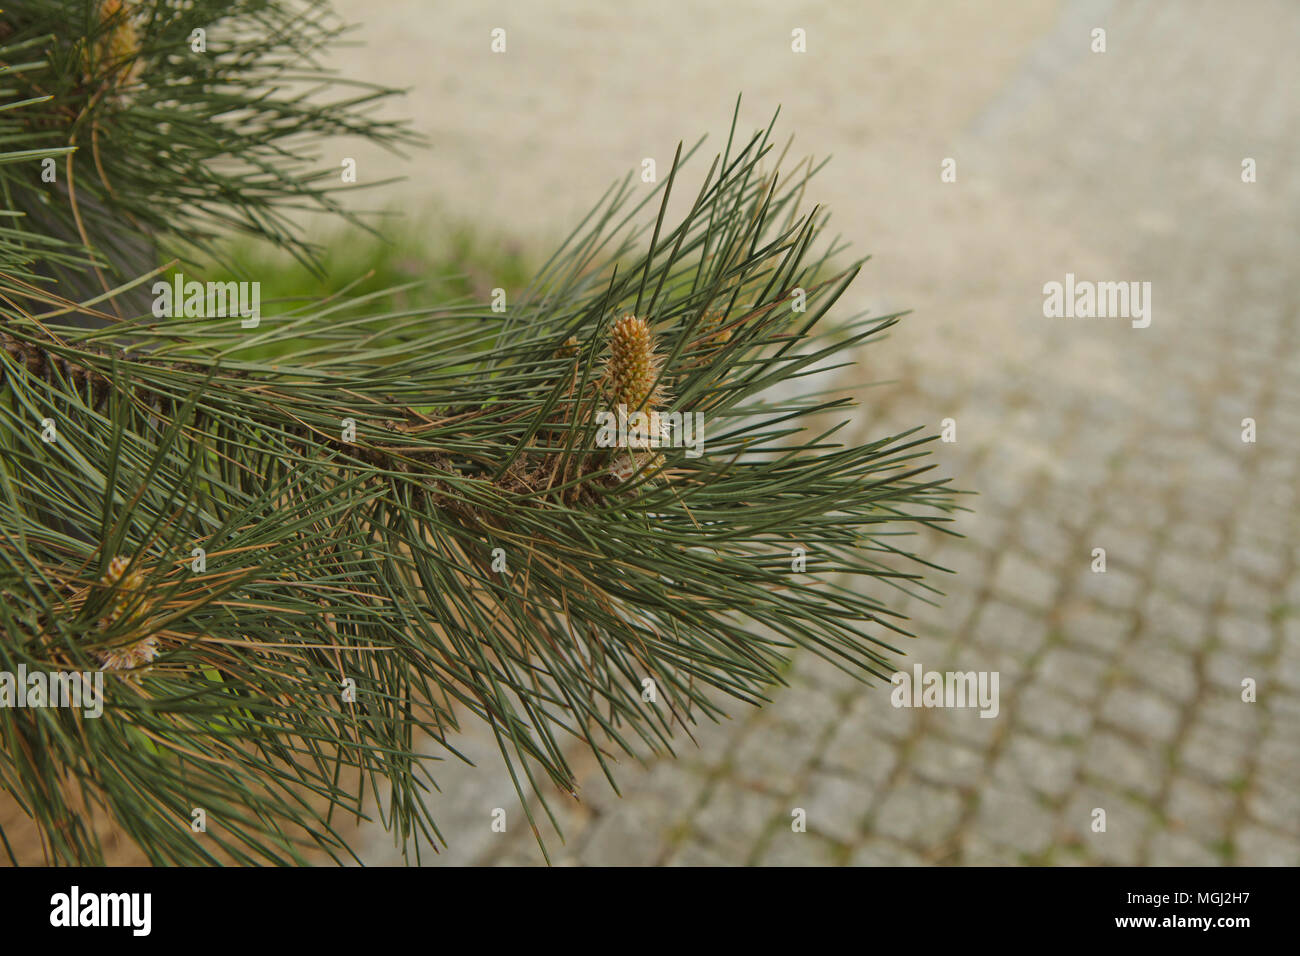 Pine twig in spring time - Stock Image